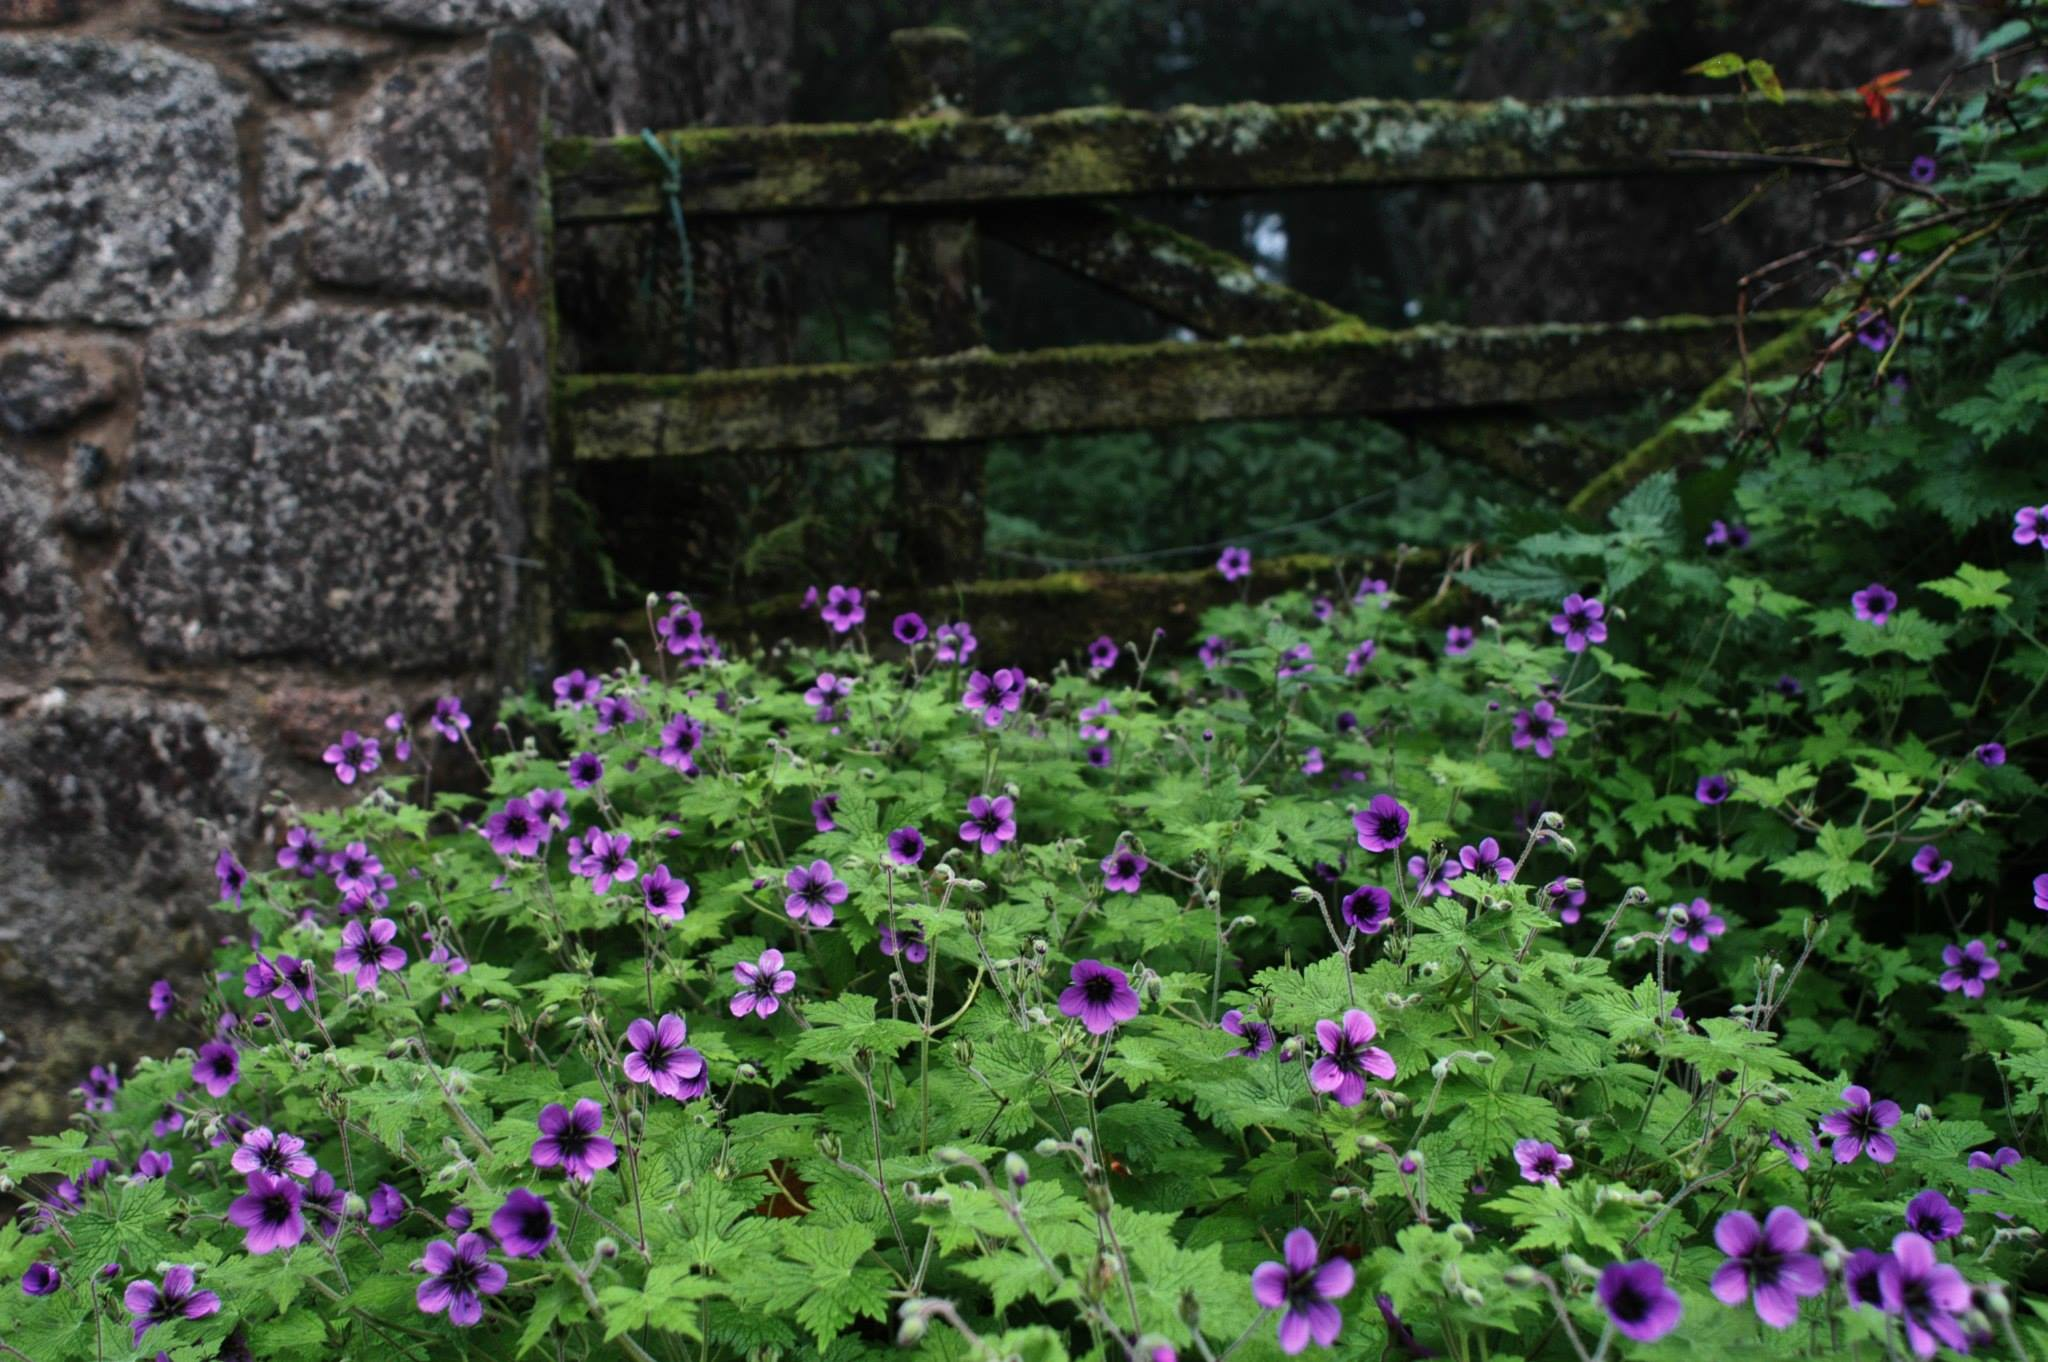 Geranium, ground cover